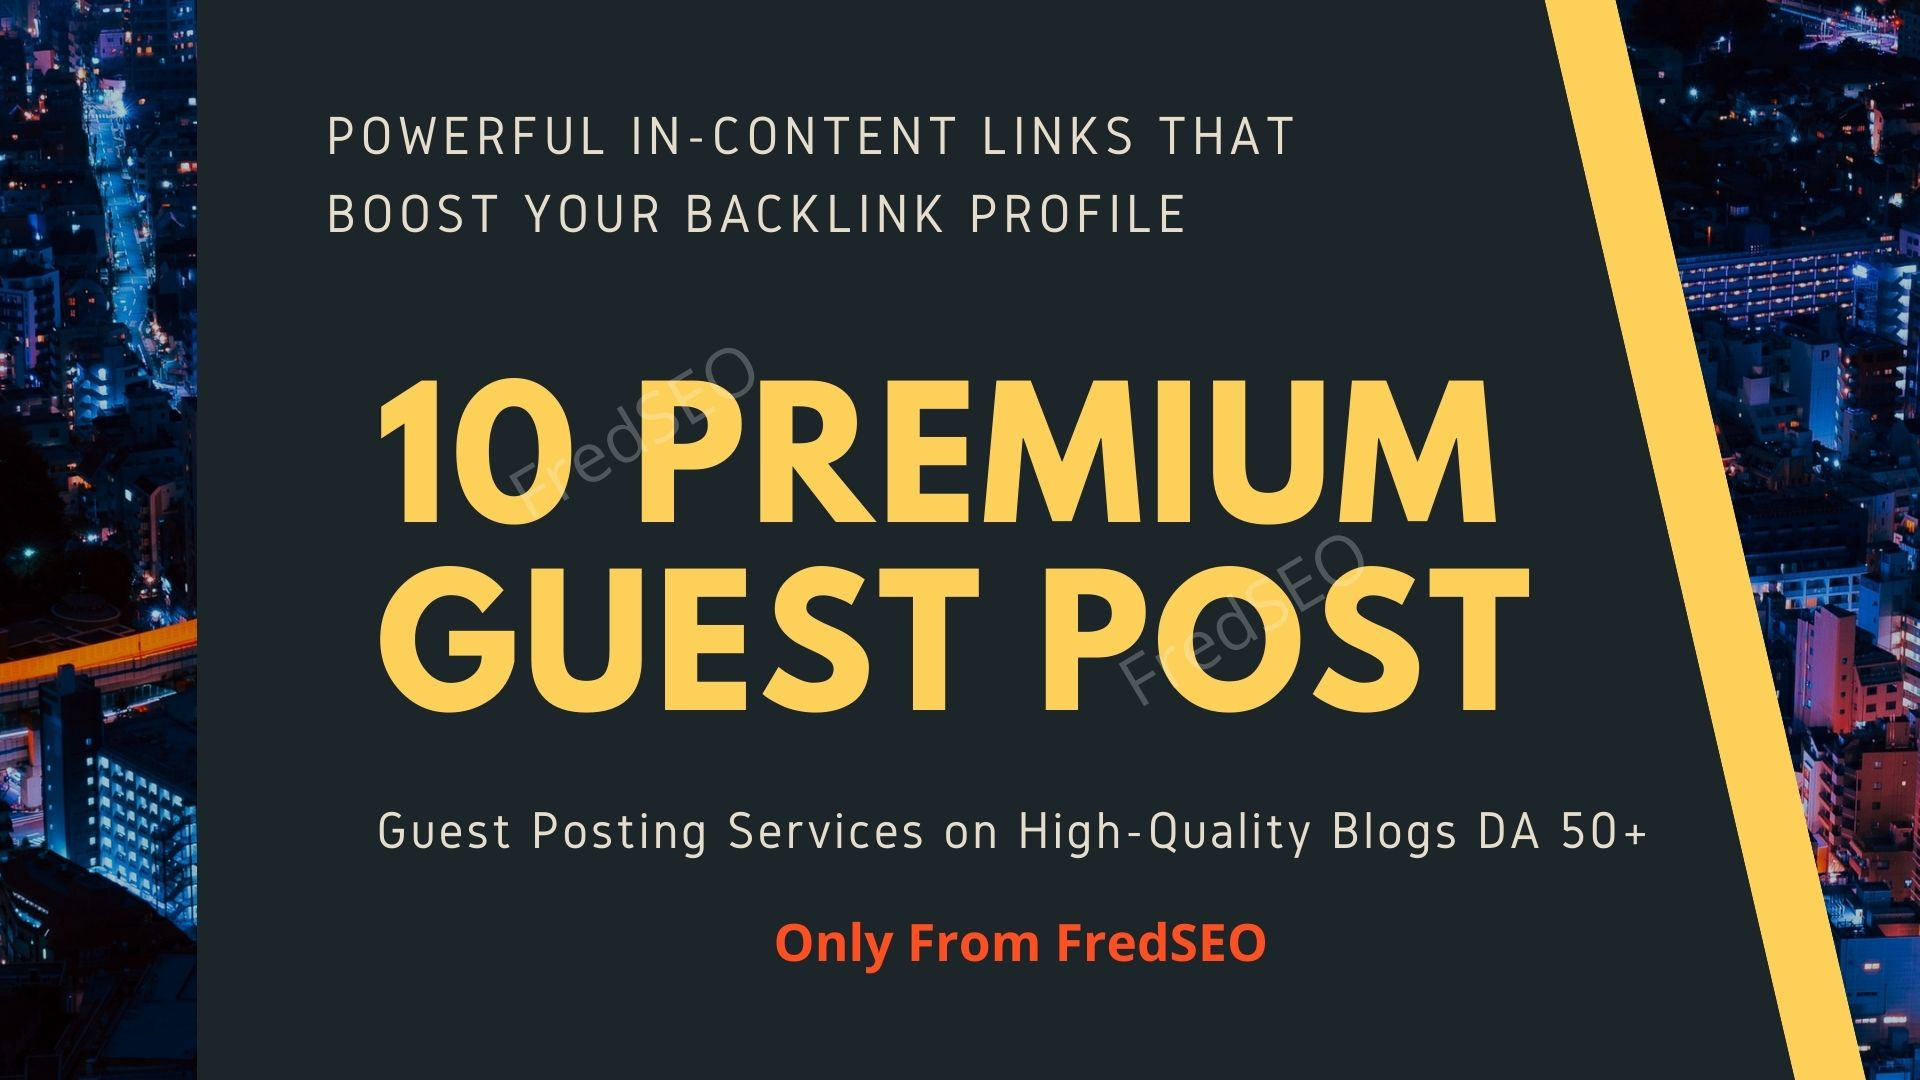 10 Premium Guest Post on DA50+ websites